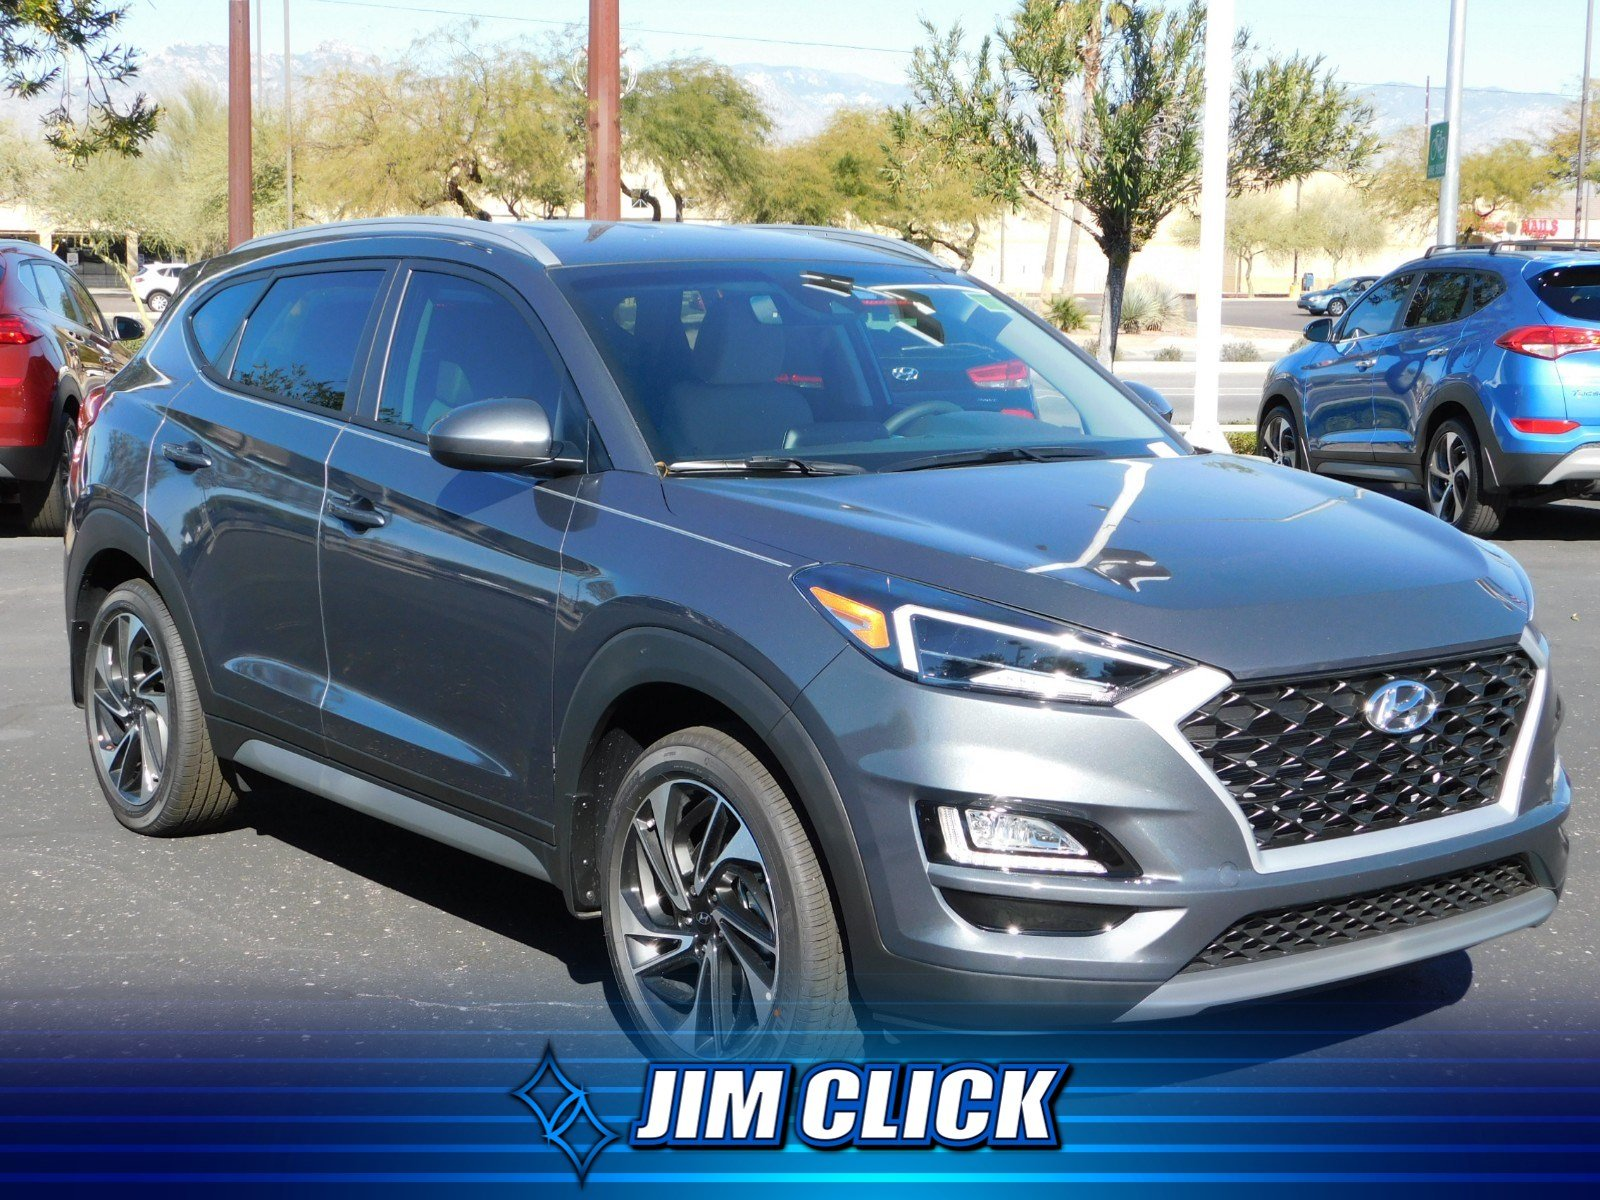 Jim Click Used Cars >> Jim Click Hyundai Eastside Featured New Cars Vehicles And Used